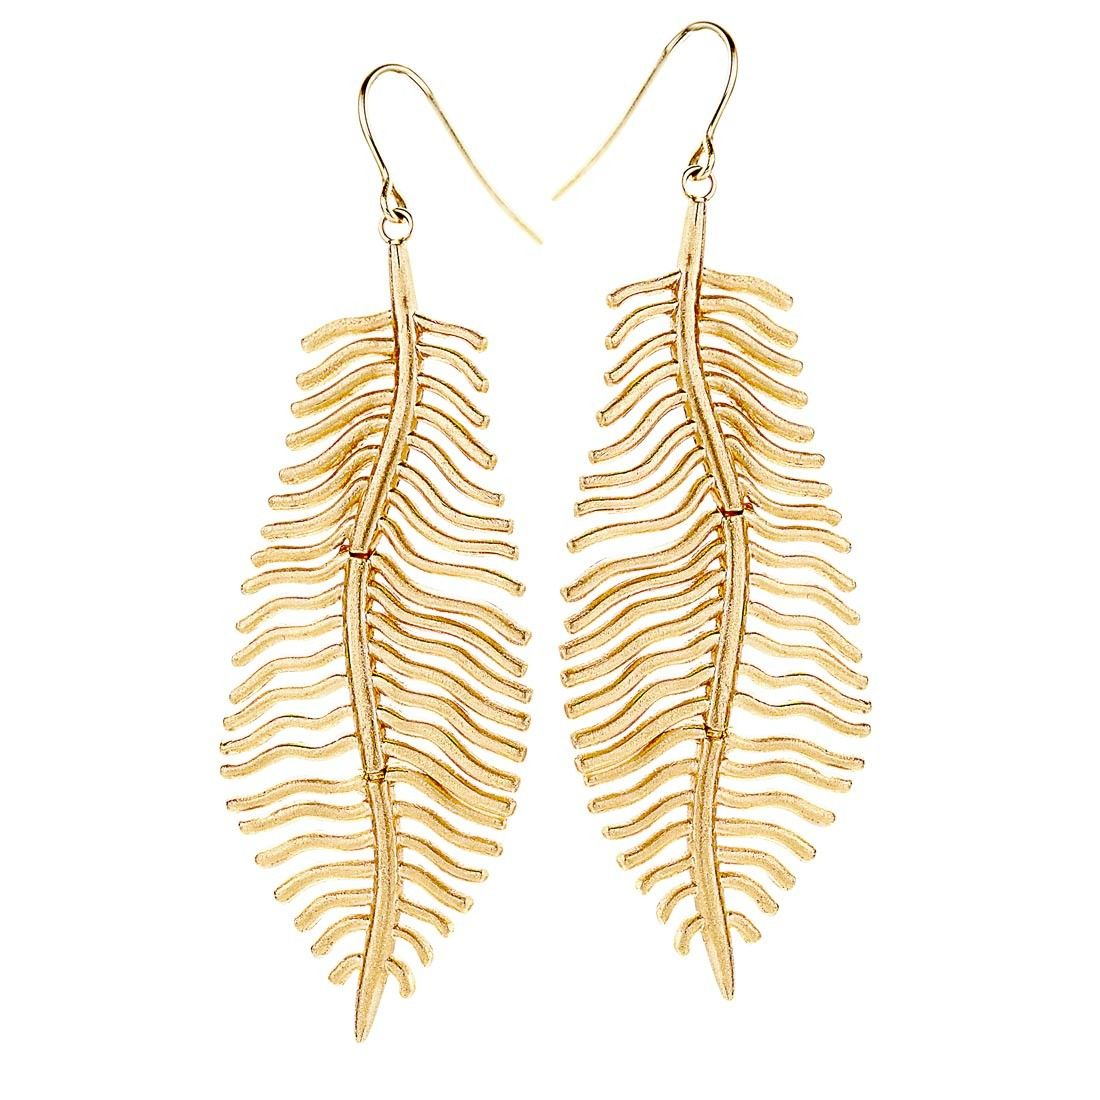 Brushed Gold Feather Earrings 14k Yellow Gold Love Rocks Ny Earrings Gold Feather Earrings Feather Earrings